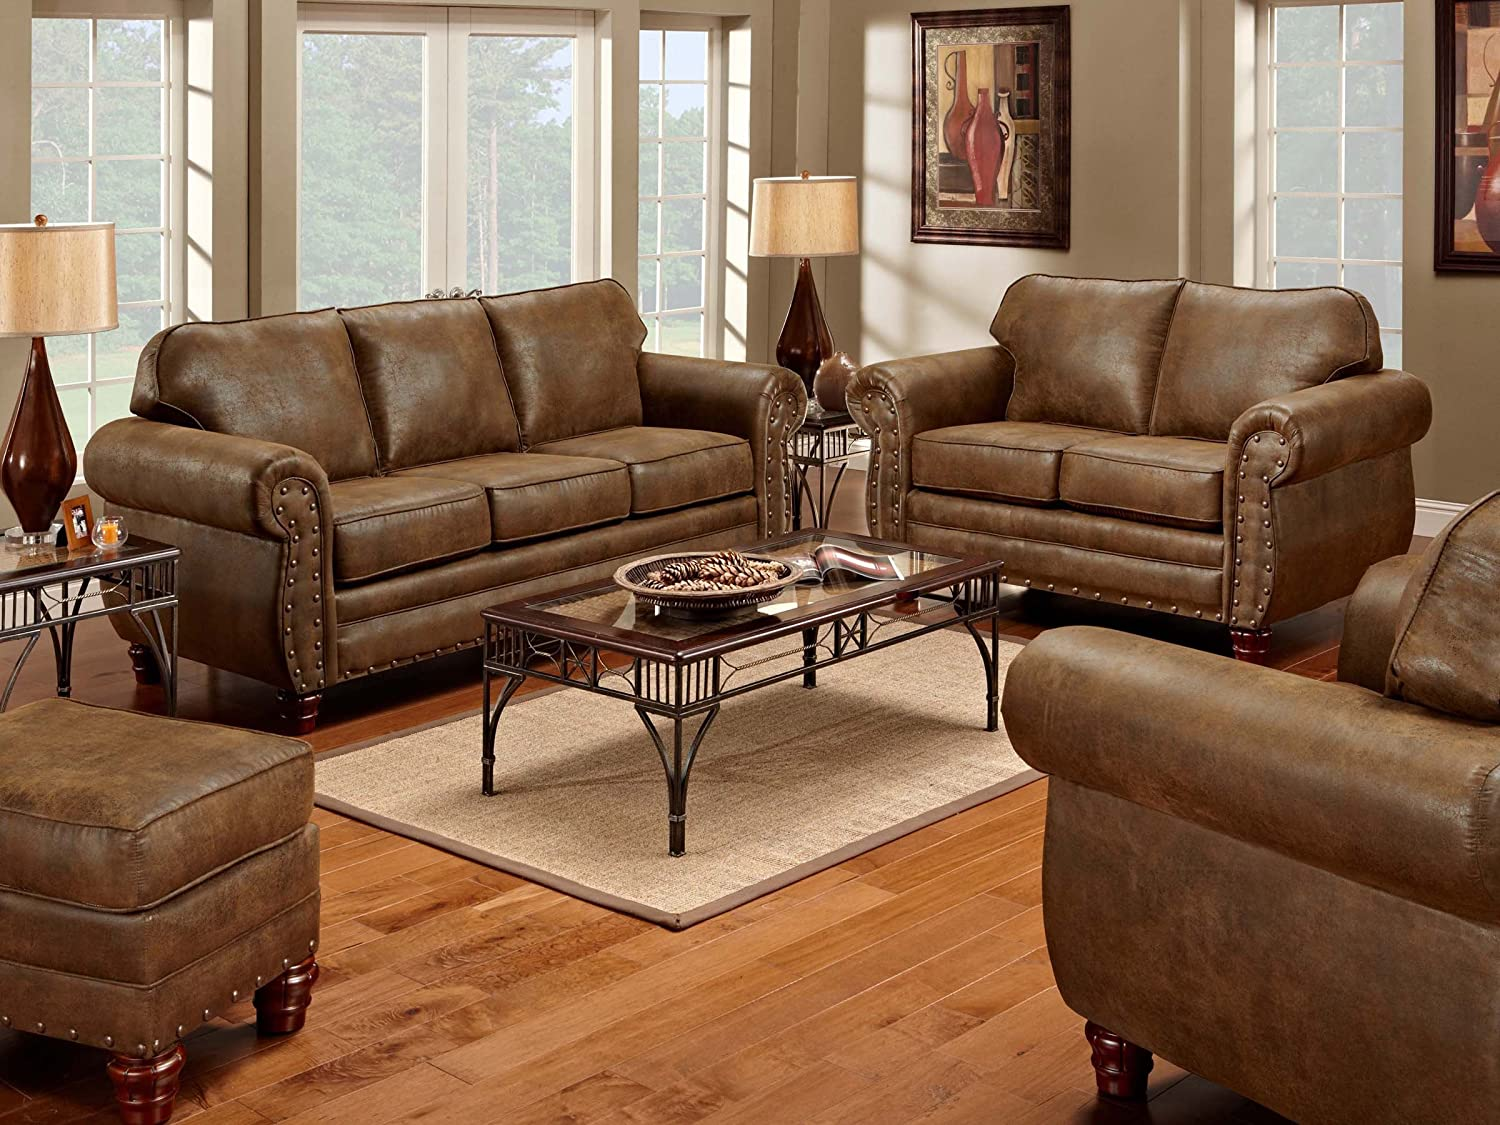 Amazon.com: American Furniture Classics 4 Piece Sedona Set With  Sofa/Loveseat/Chair/Ottoman: Kitchen U0026 Dining Part 31